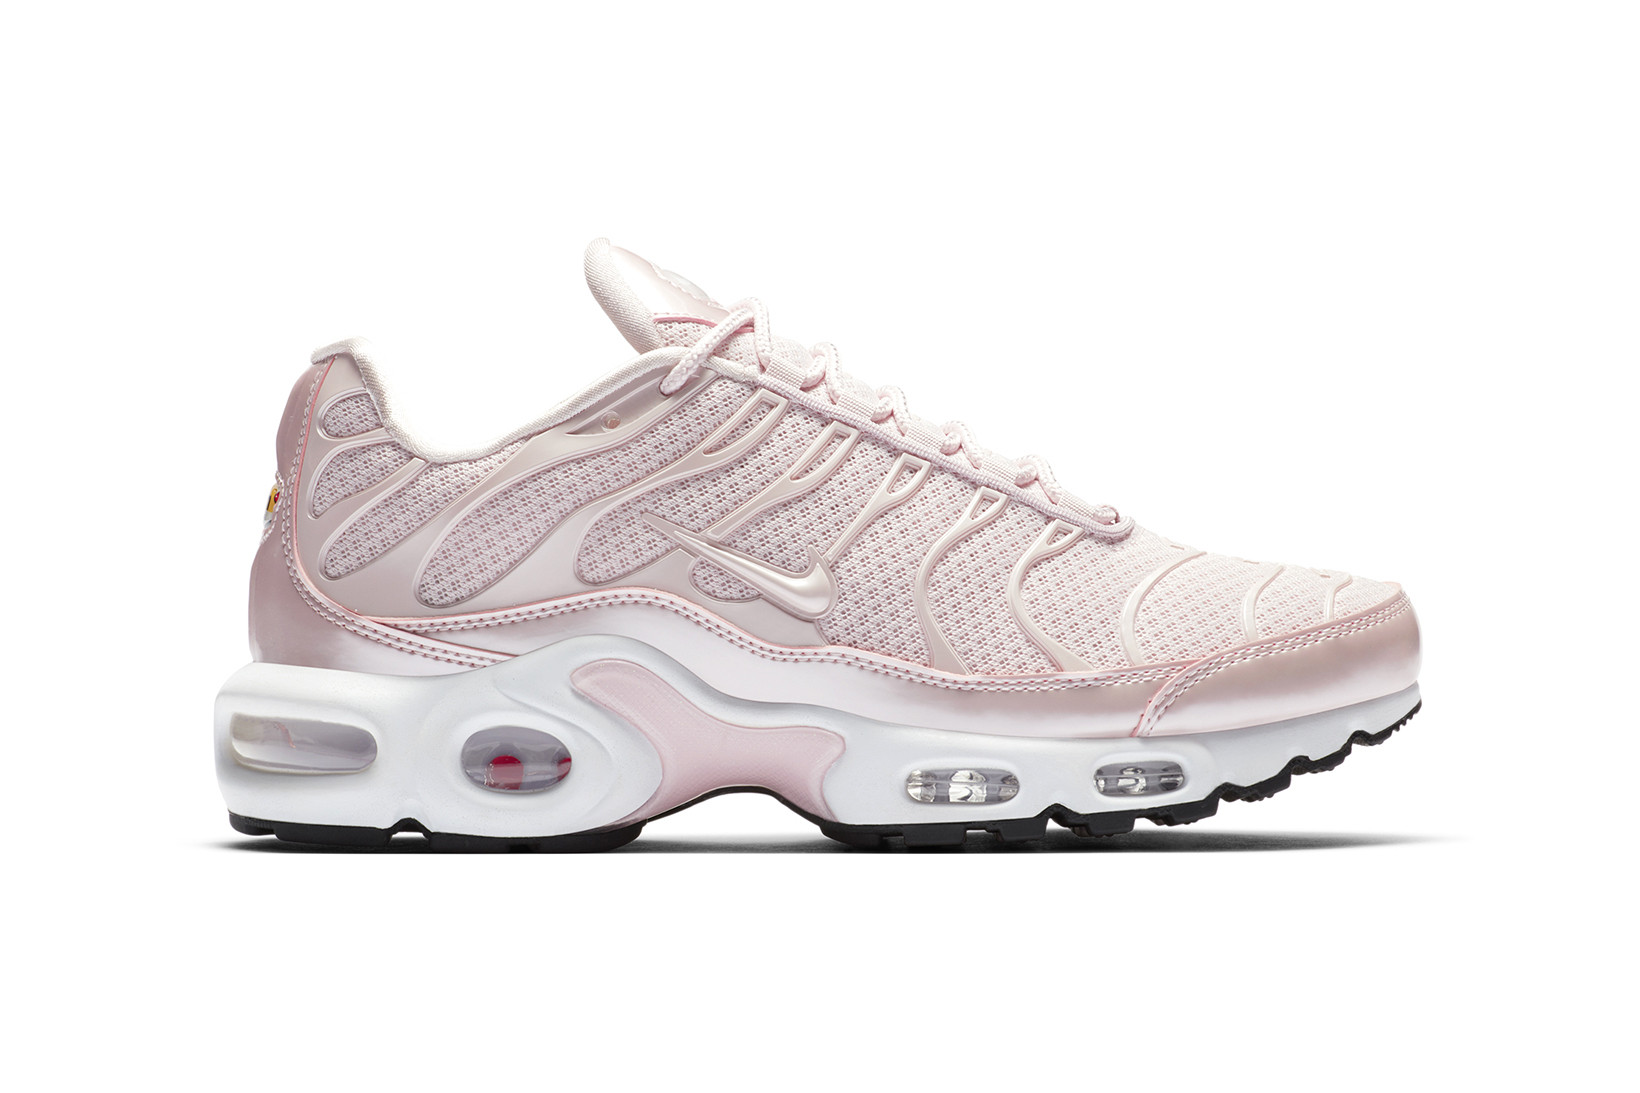 Nike Air Max Plus Premium Barely Rose